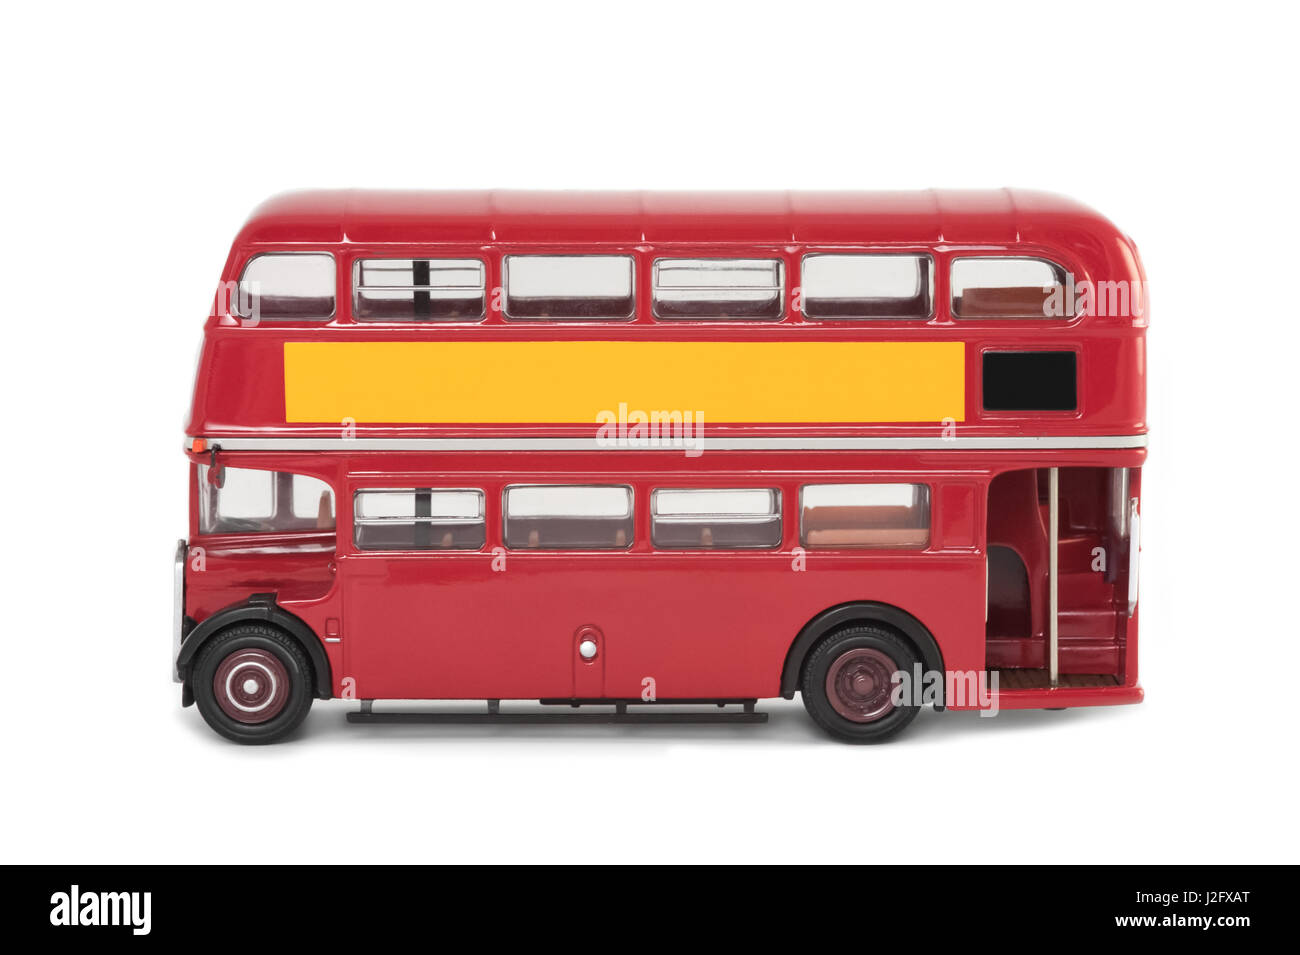 miniature scale model of a vintage red london bus on white - Stock Image